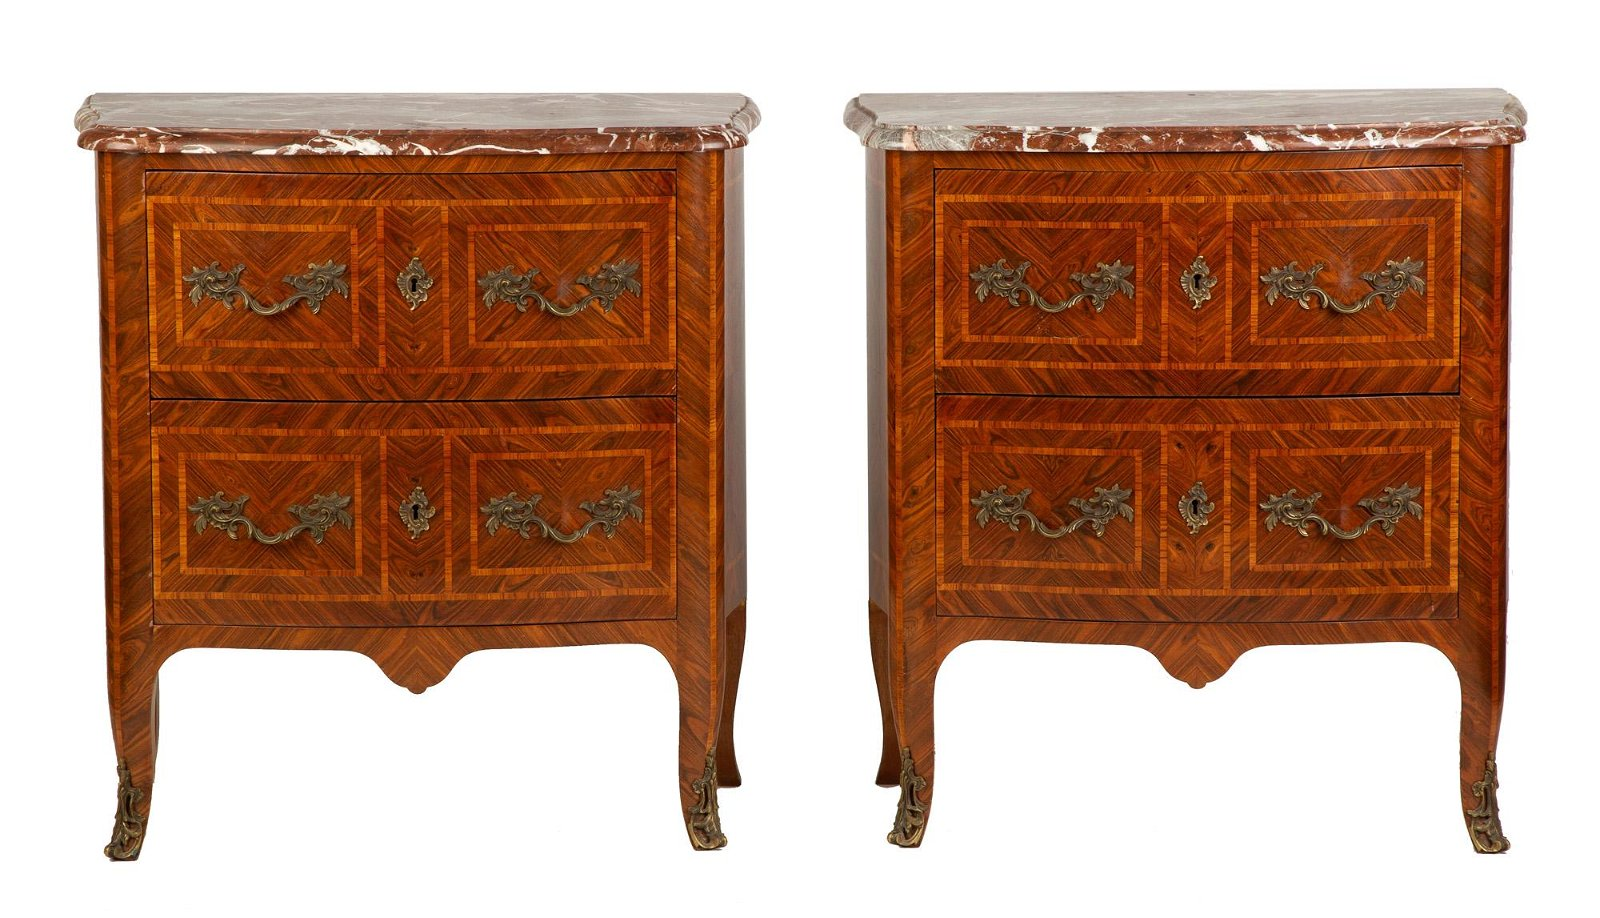 Pair of Marquetry 2-Drawer Serpentine Commodes